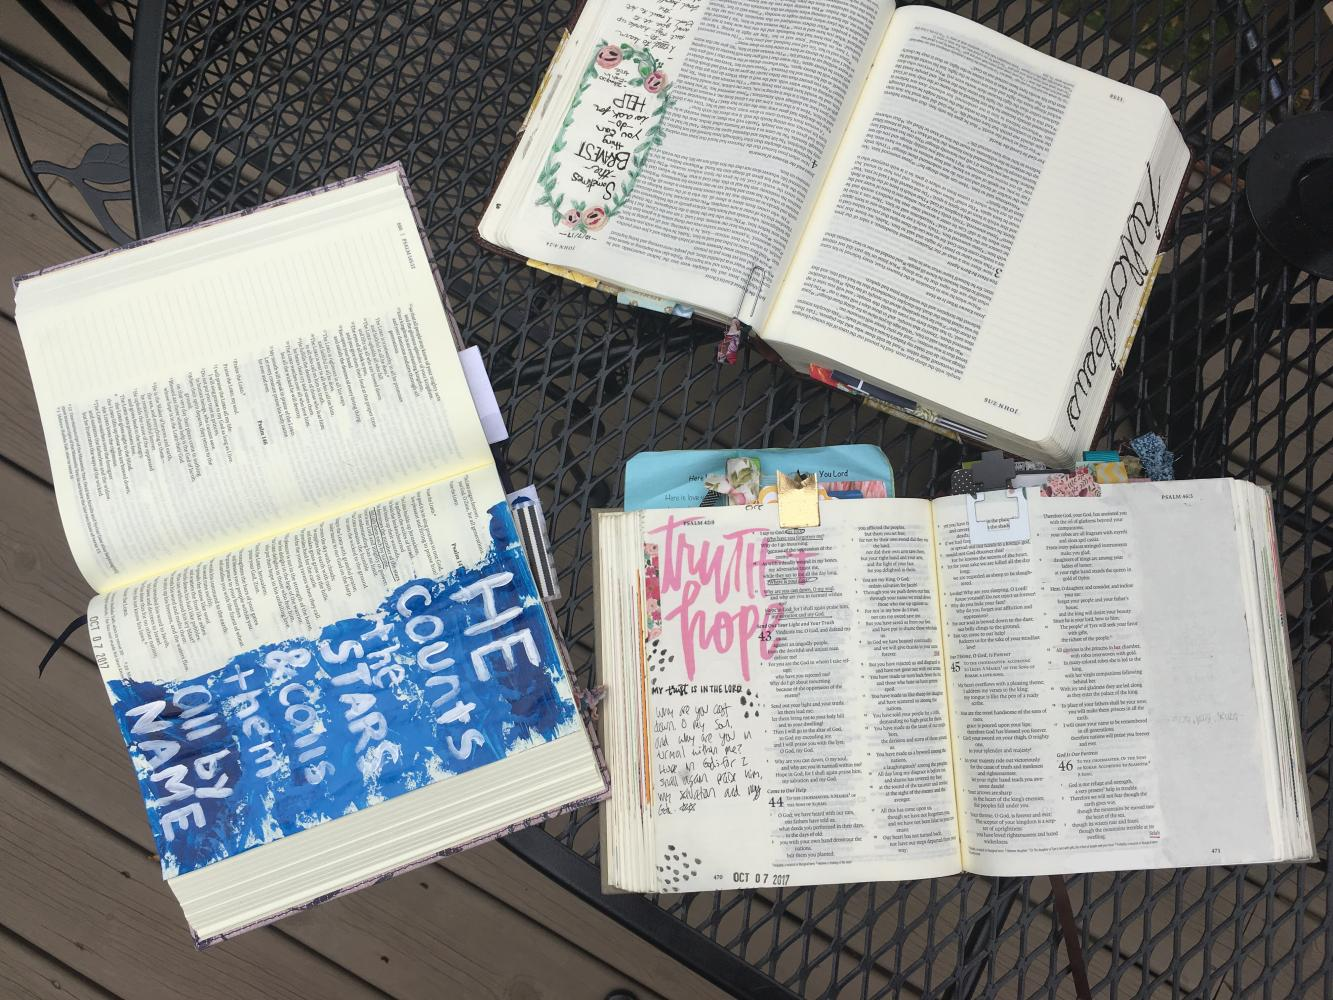 Abby Burr finds talent and growth through Bible journaling